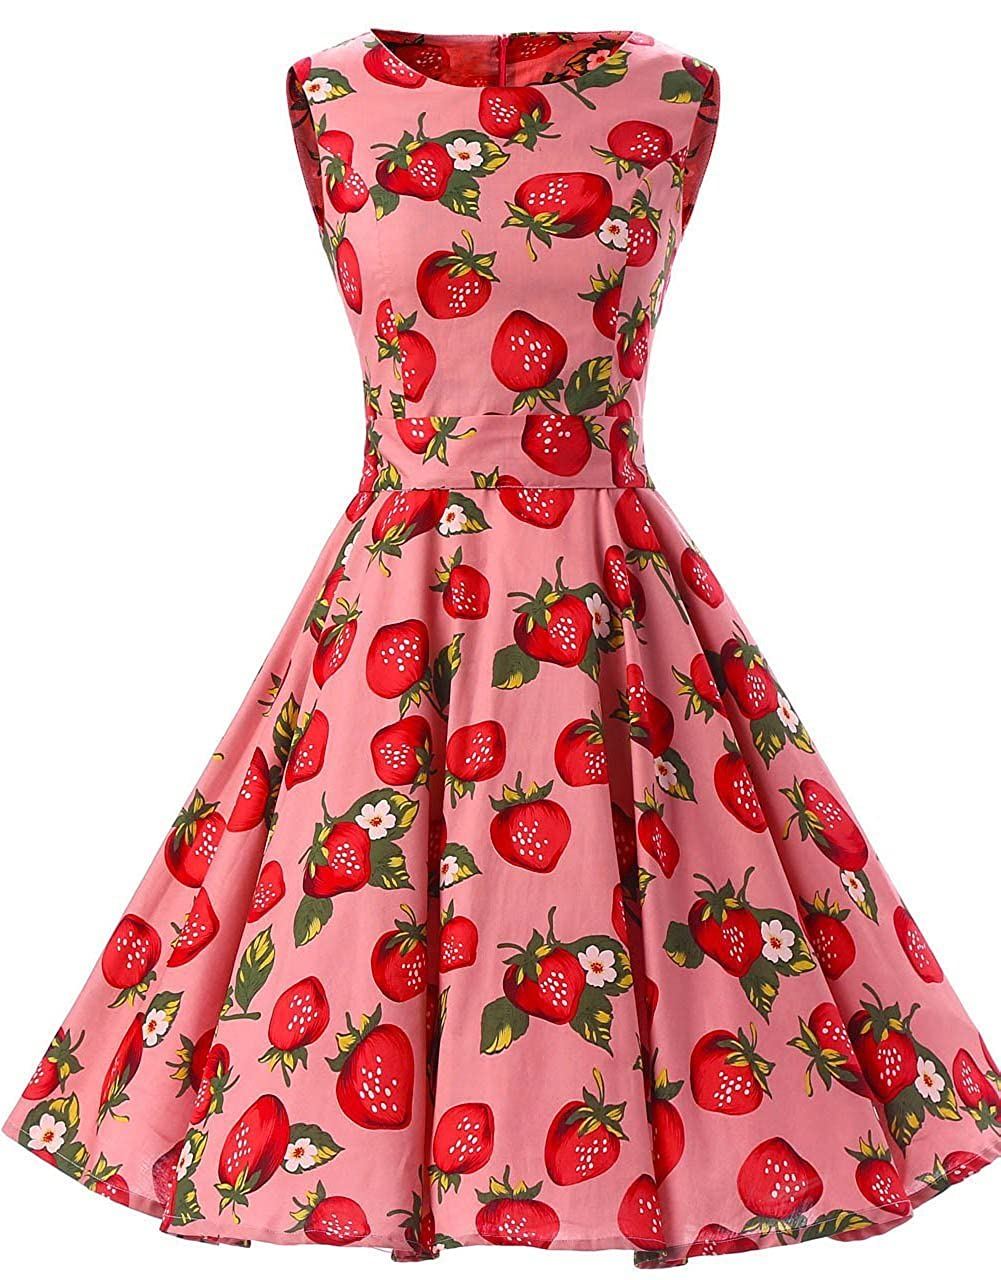 Ensnovo Womens Vintage 1950s Sleeveless Retro Floral Print Rockabilly Swing Dress 66-05-1005